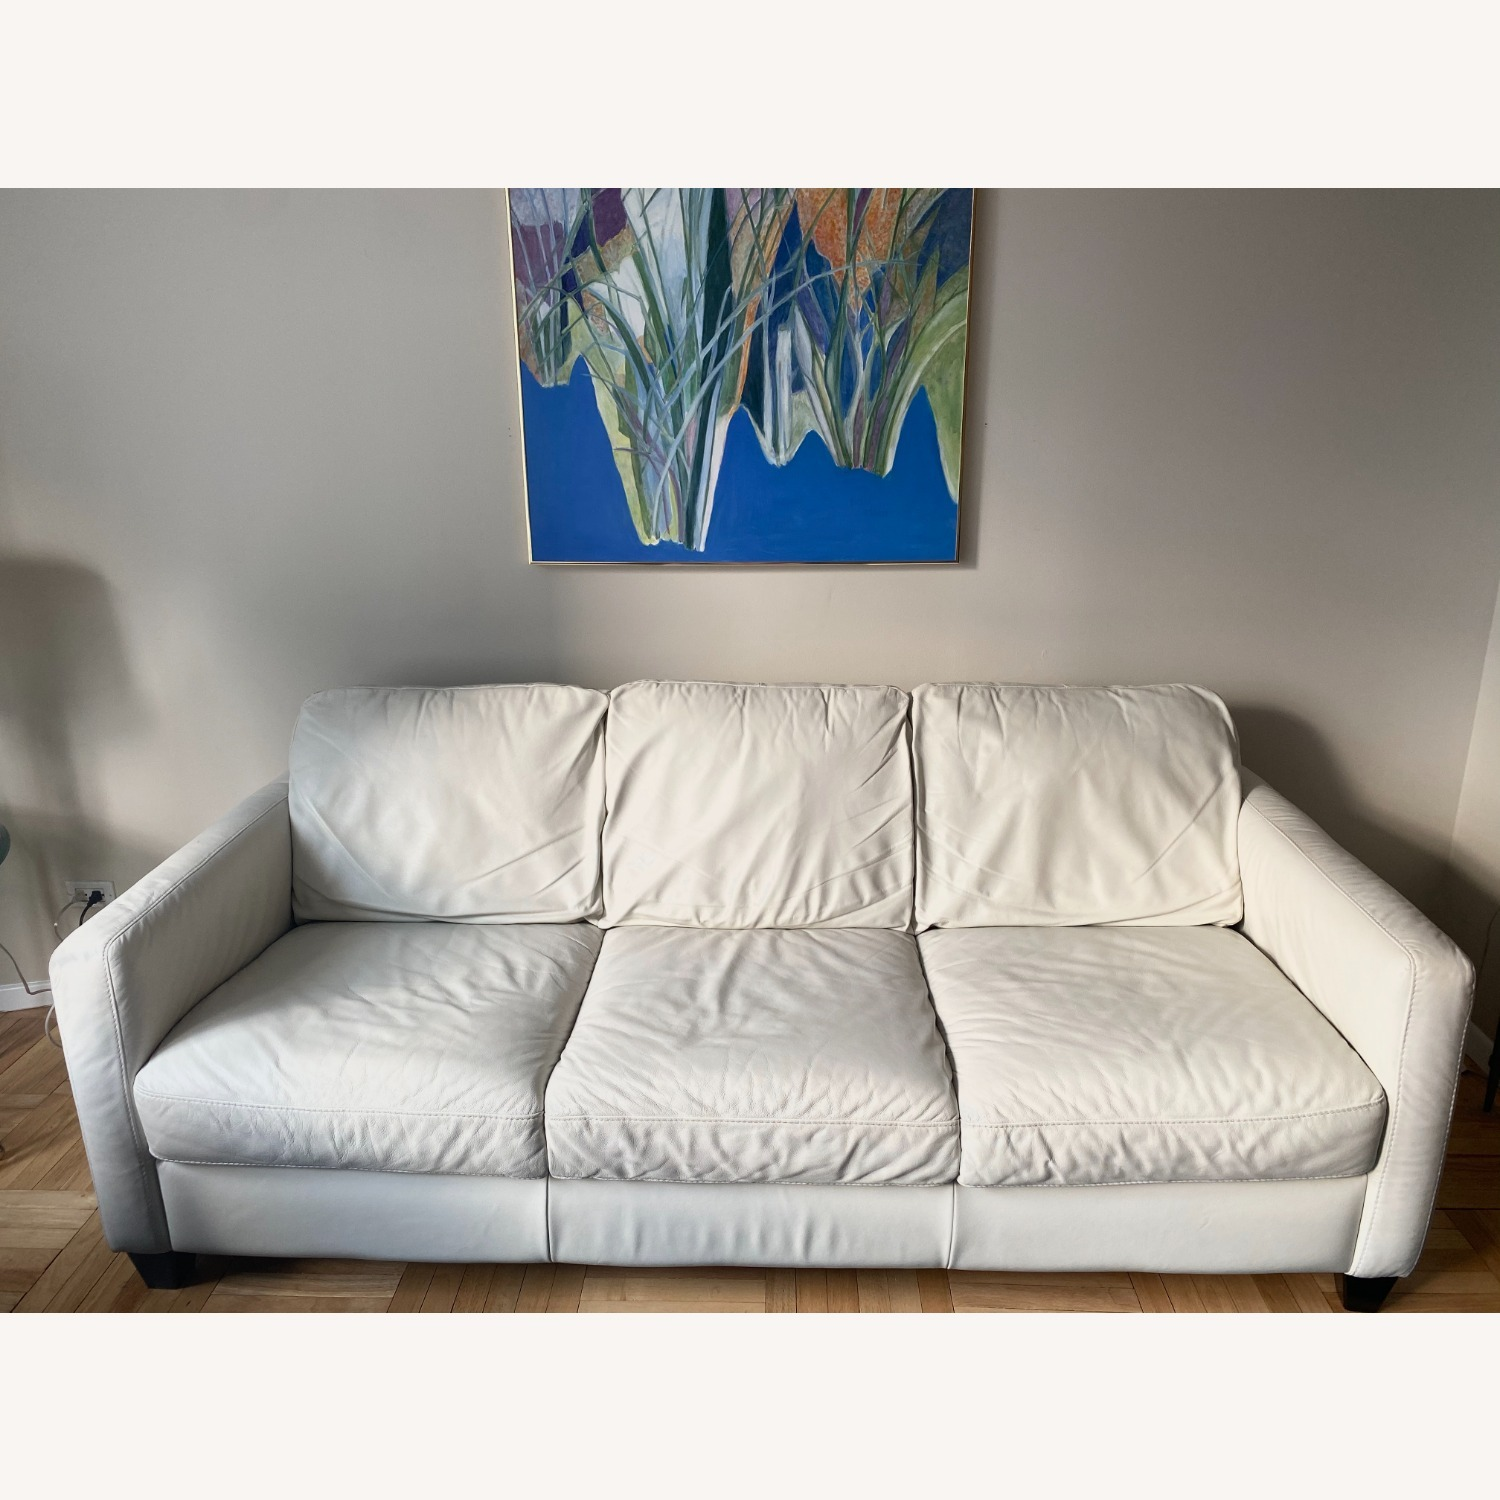 Macy's White Leather Three-seater Couch - image-1